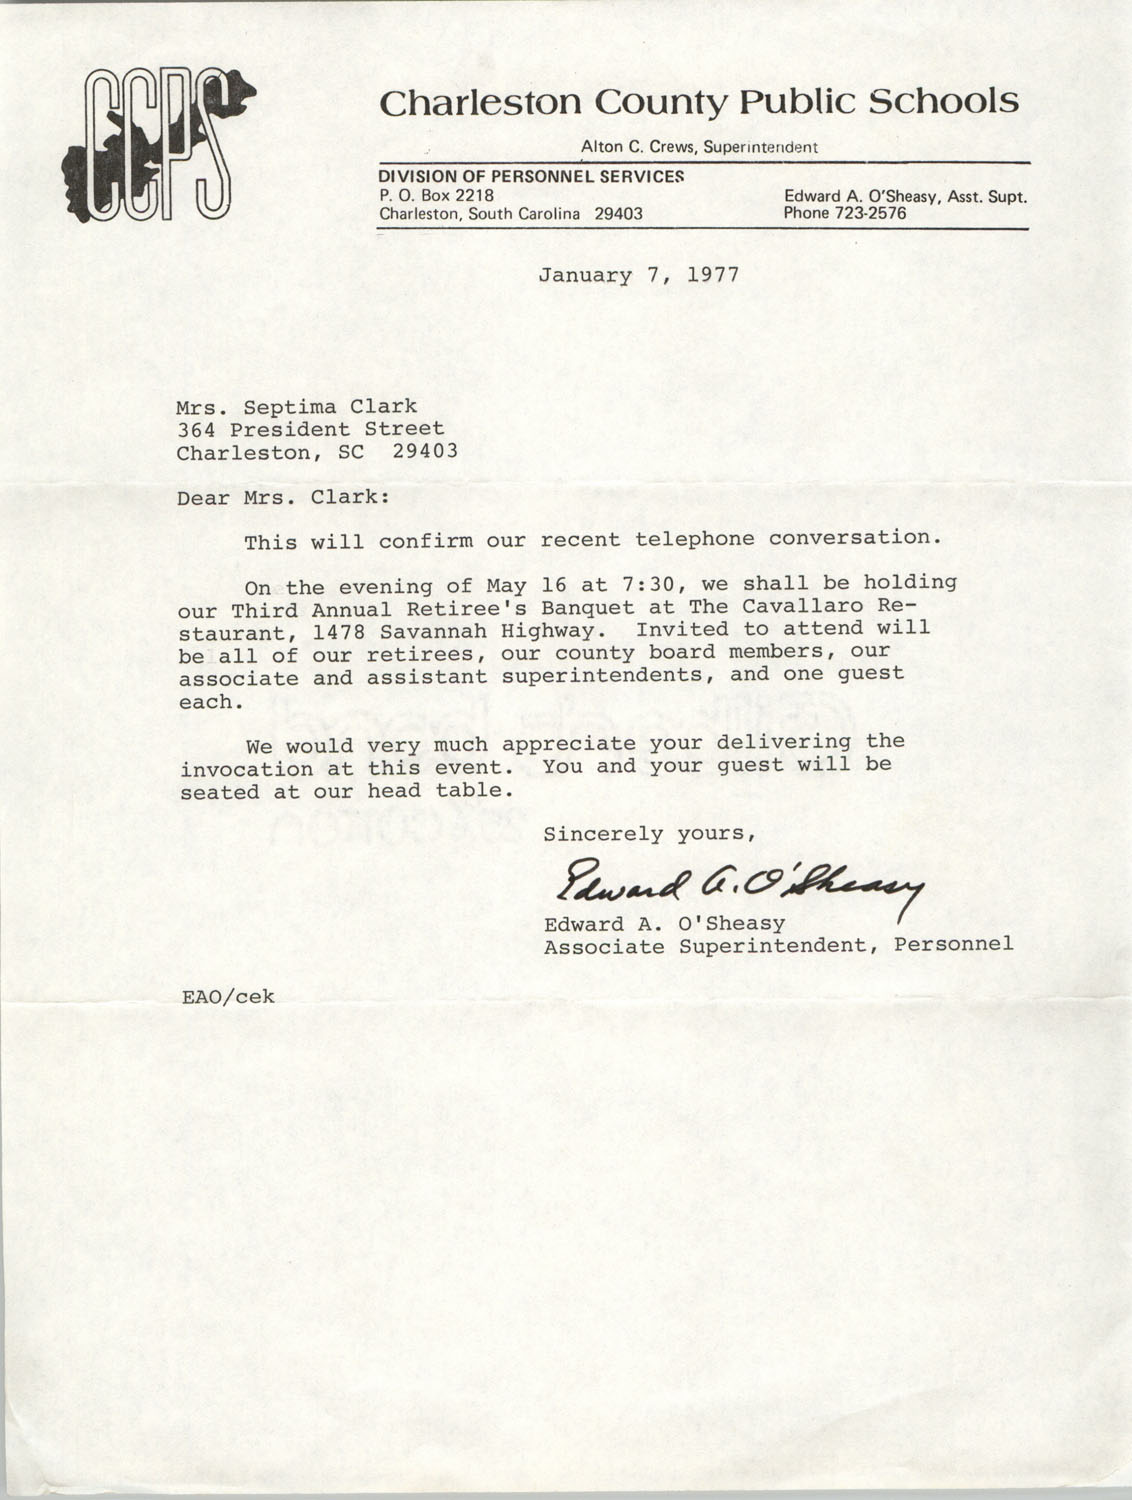 Letter from Edward A. O'Sheasy to Septima P. Clark, January 7, 1977